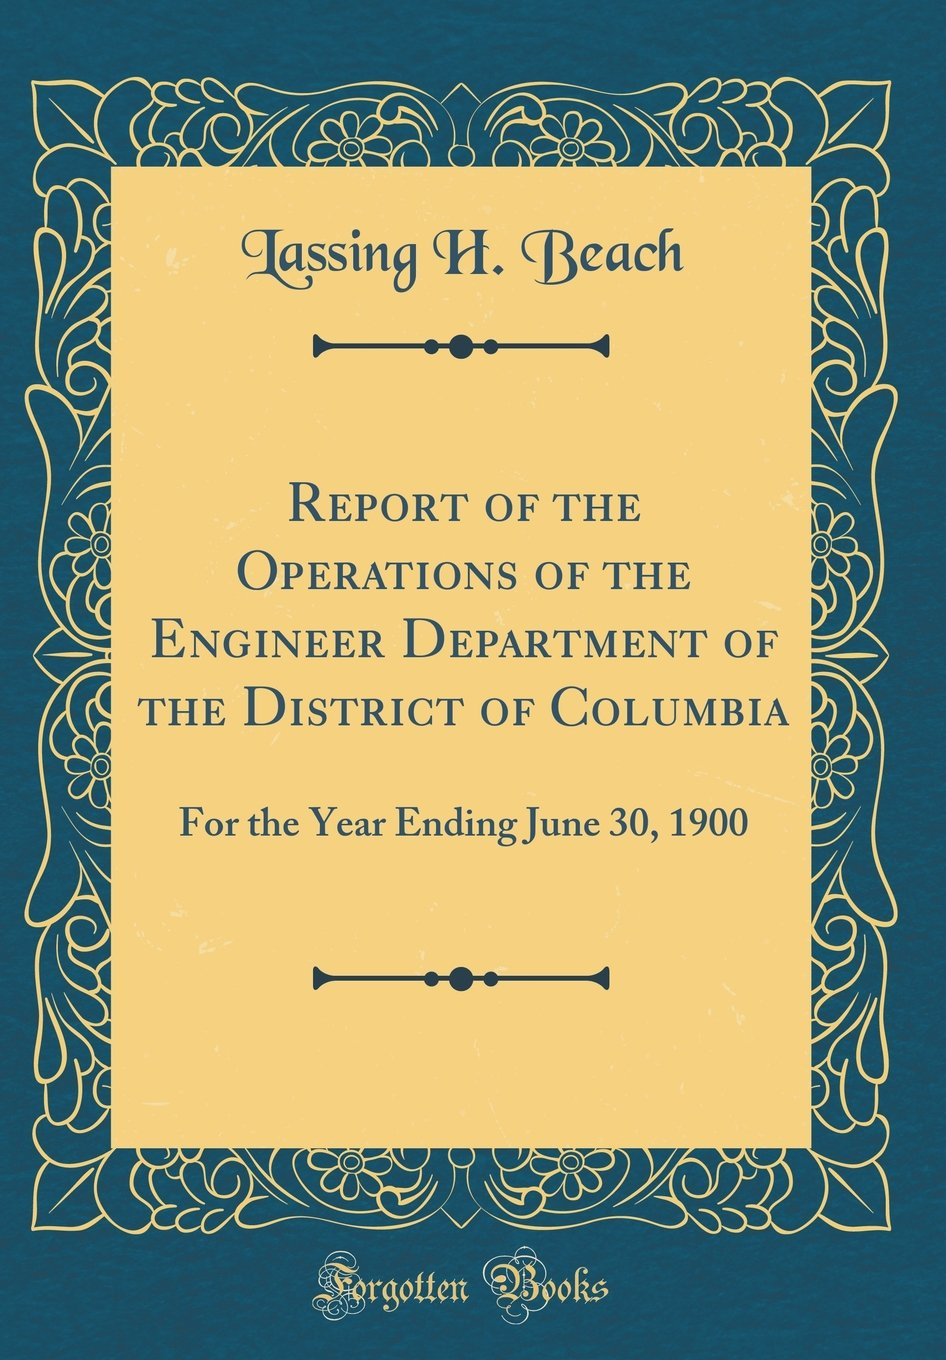 Download Report of the Operations of the Engineer Department of the District of Columbia: For the Year Ending June 30, 1900 (Classic Reprint) ebook